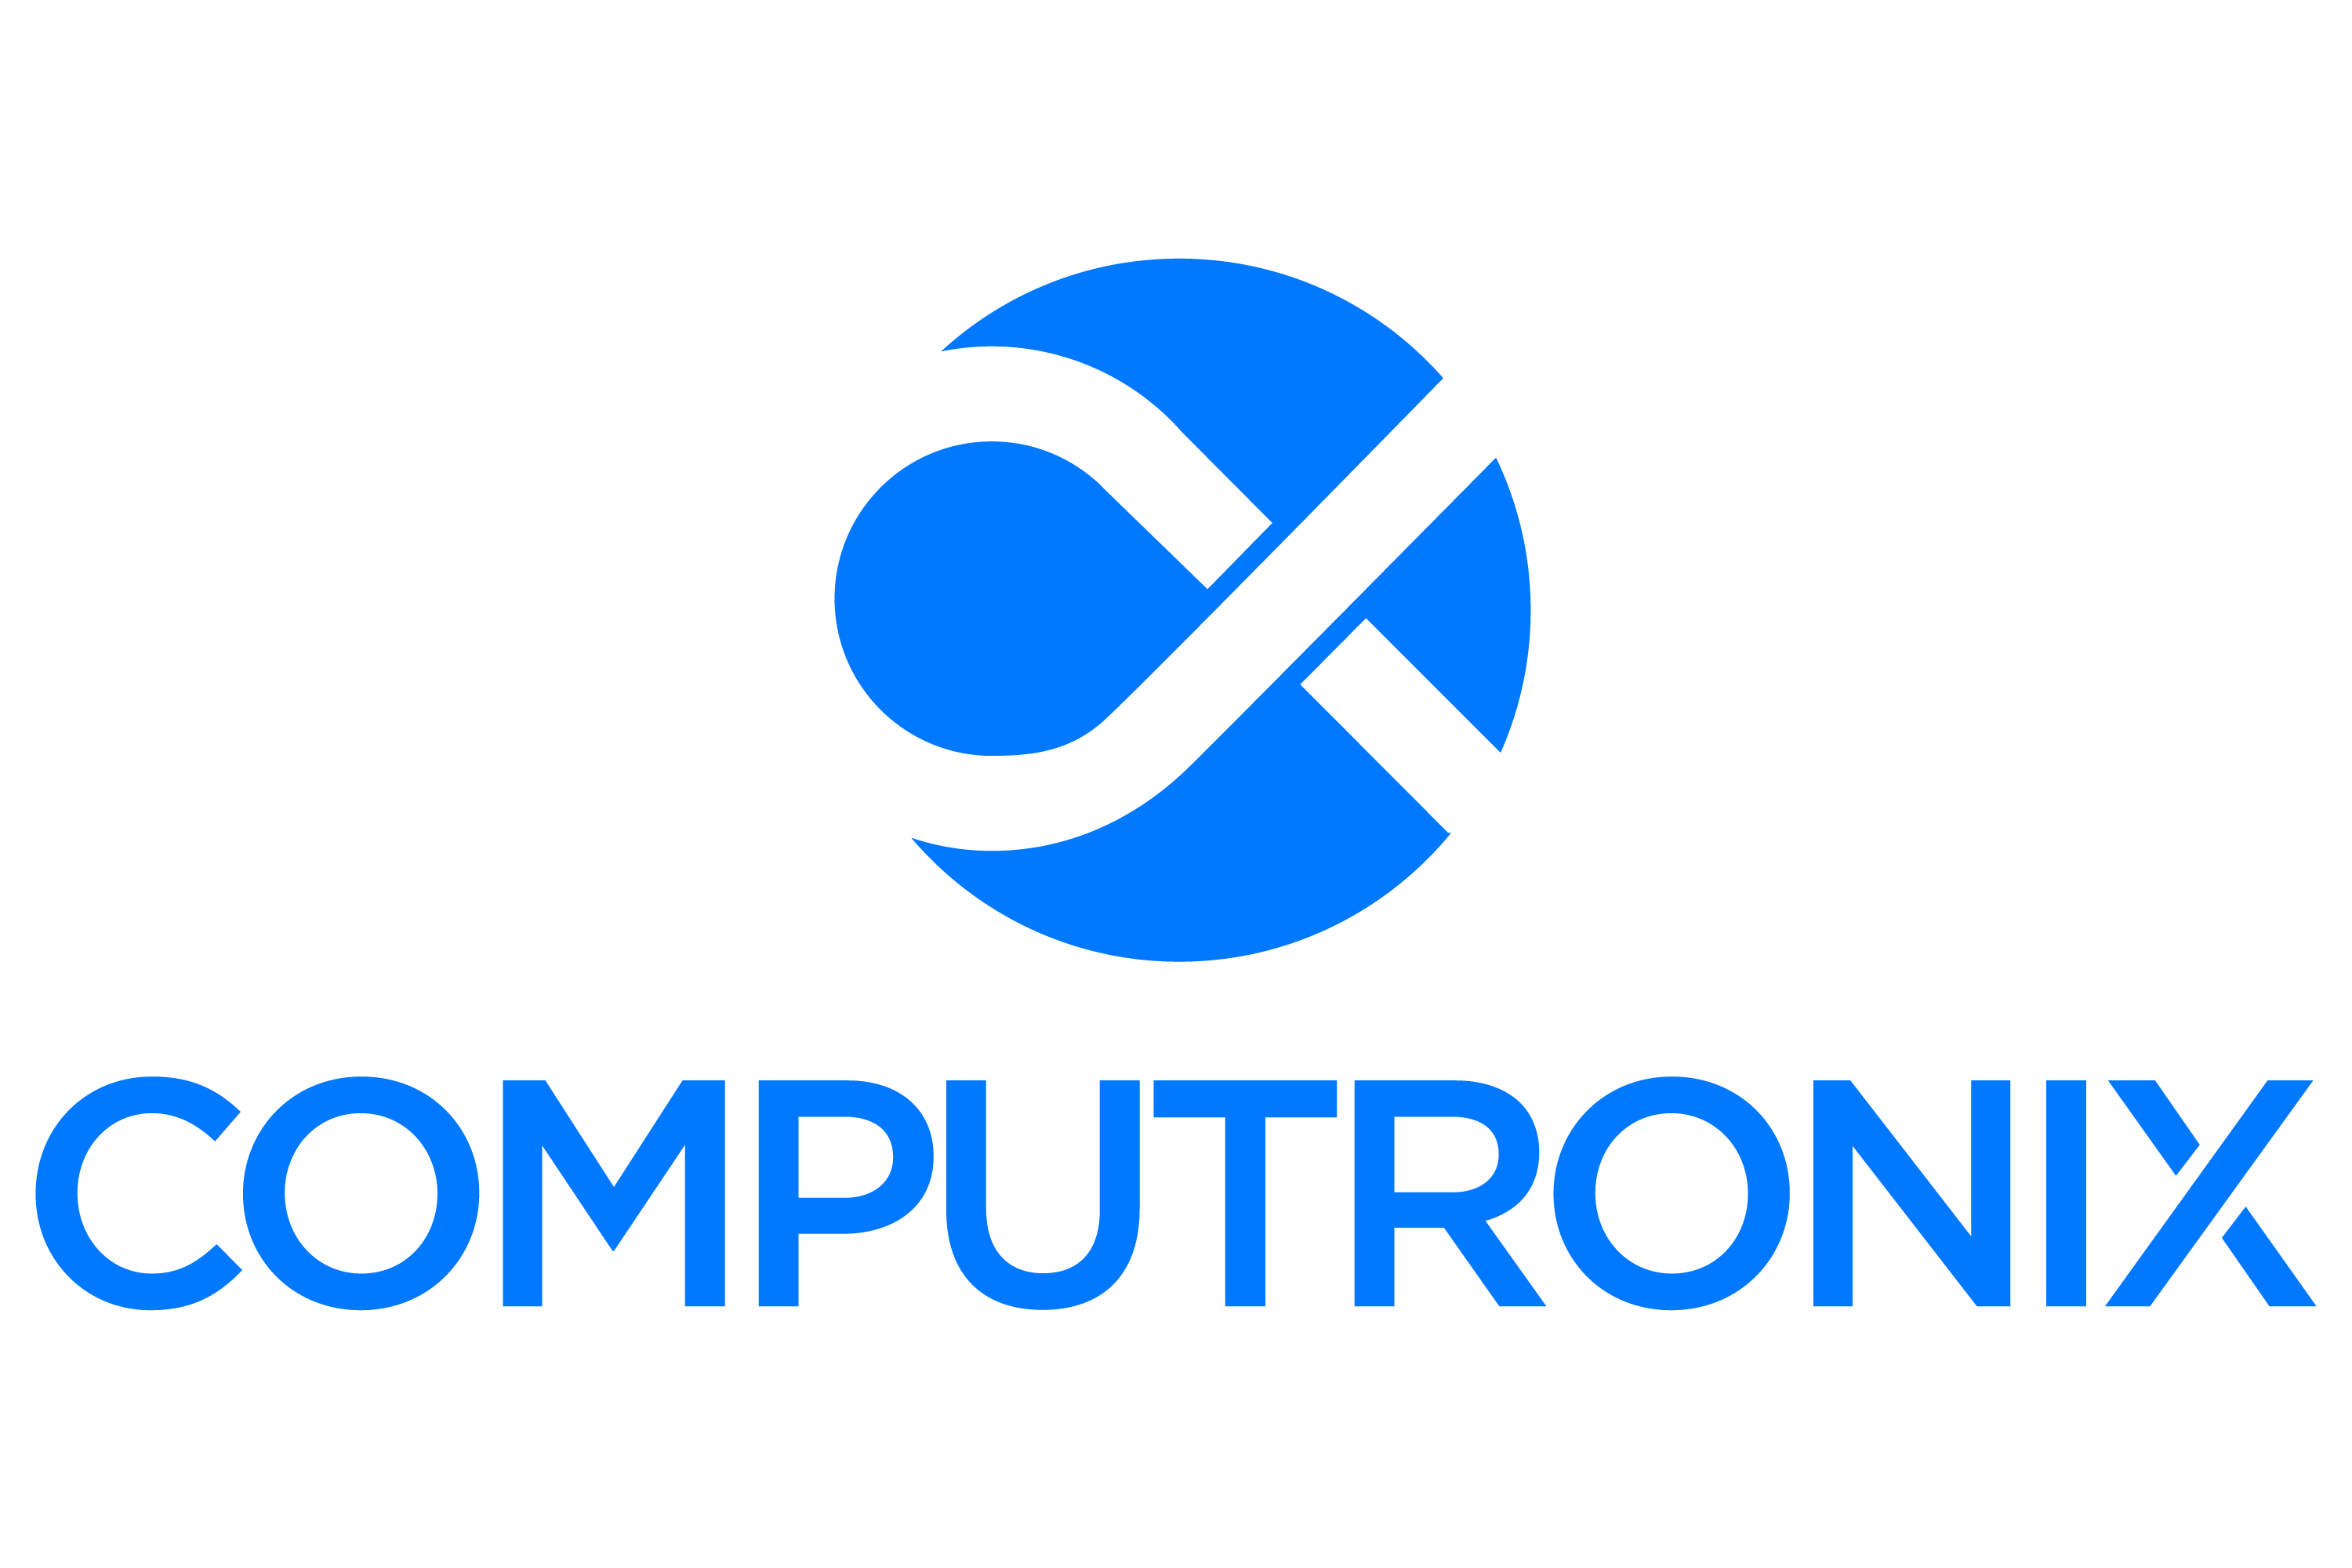 COMPUTRONIX_screen